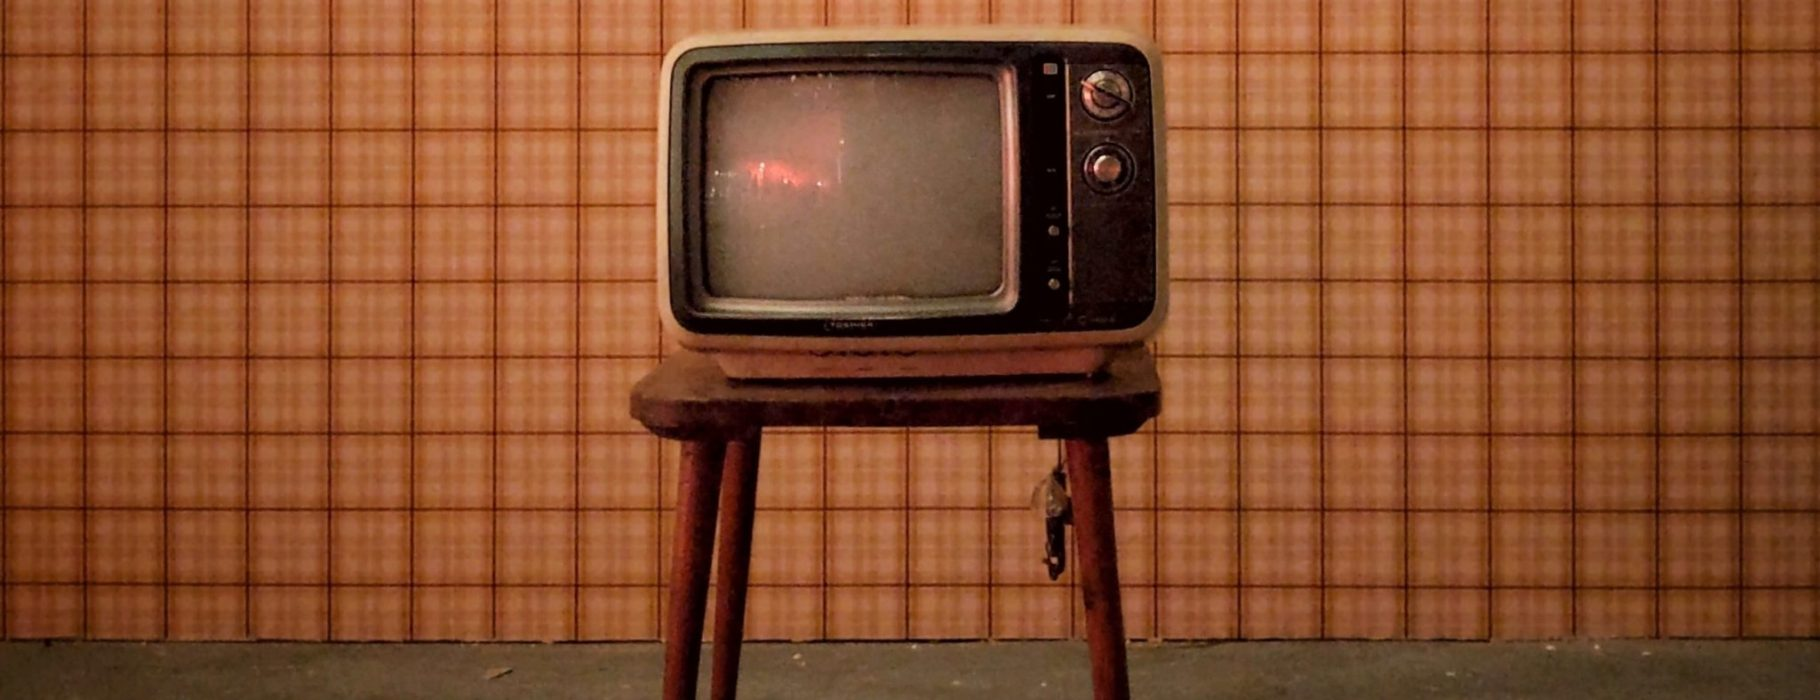 Vintage television set against a checked wallpaper background